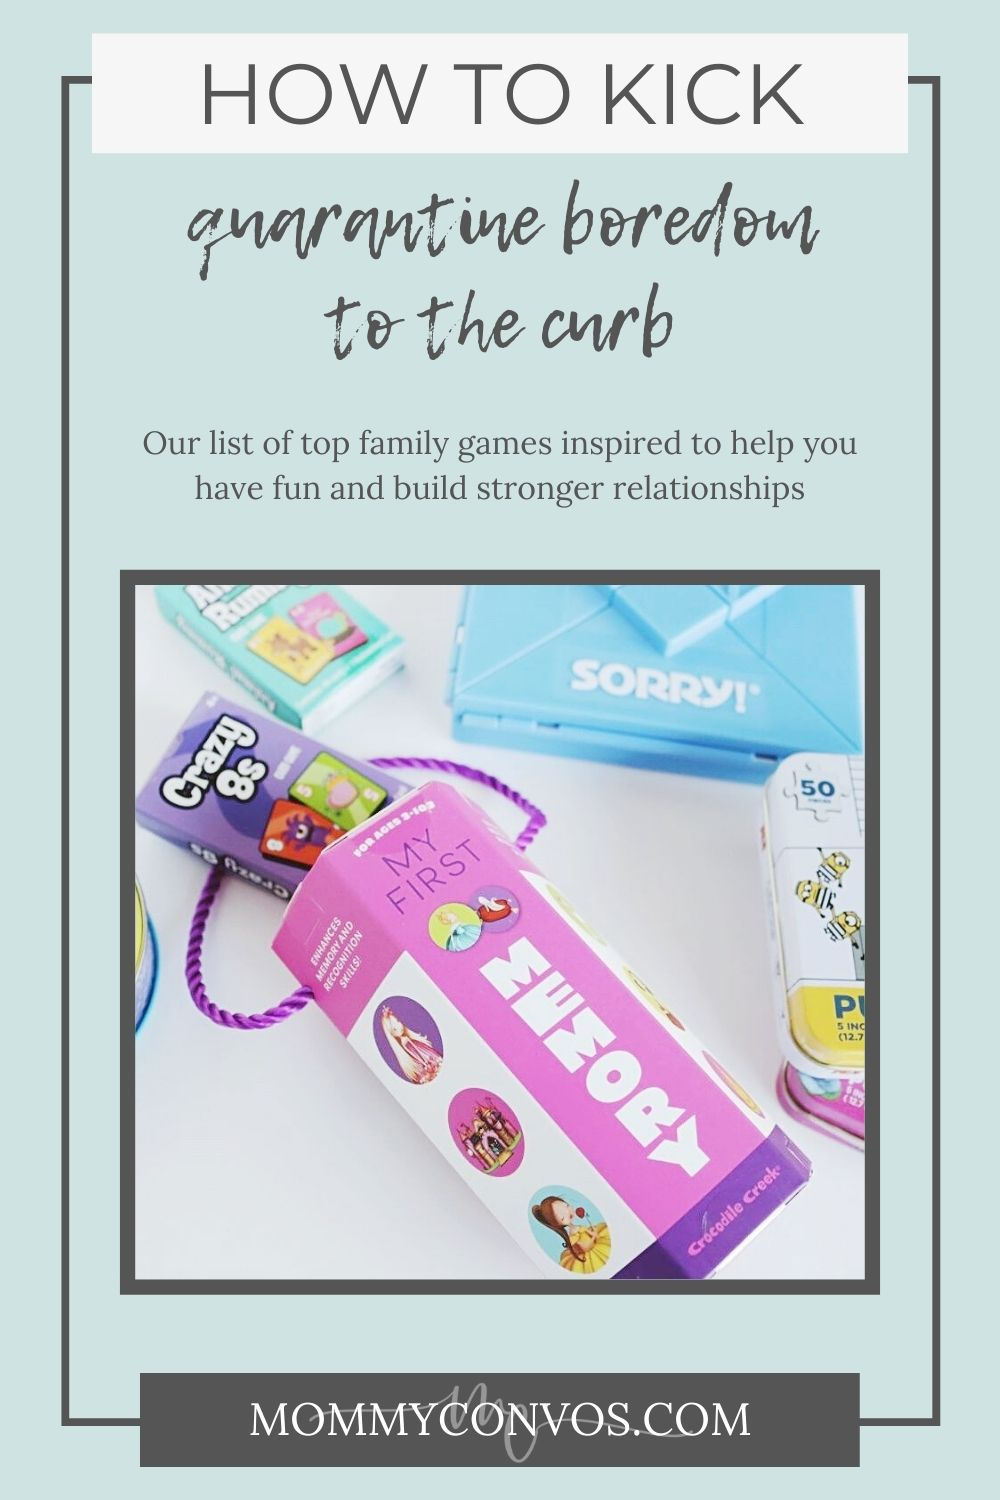 family-friendly games the whole family will love, top game list, family favorite games, quarantine boredom, how to kick quarantine boredom to the curb, covid-19, indoor activities, the ultimate list of indoor activities